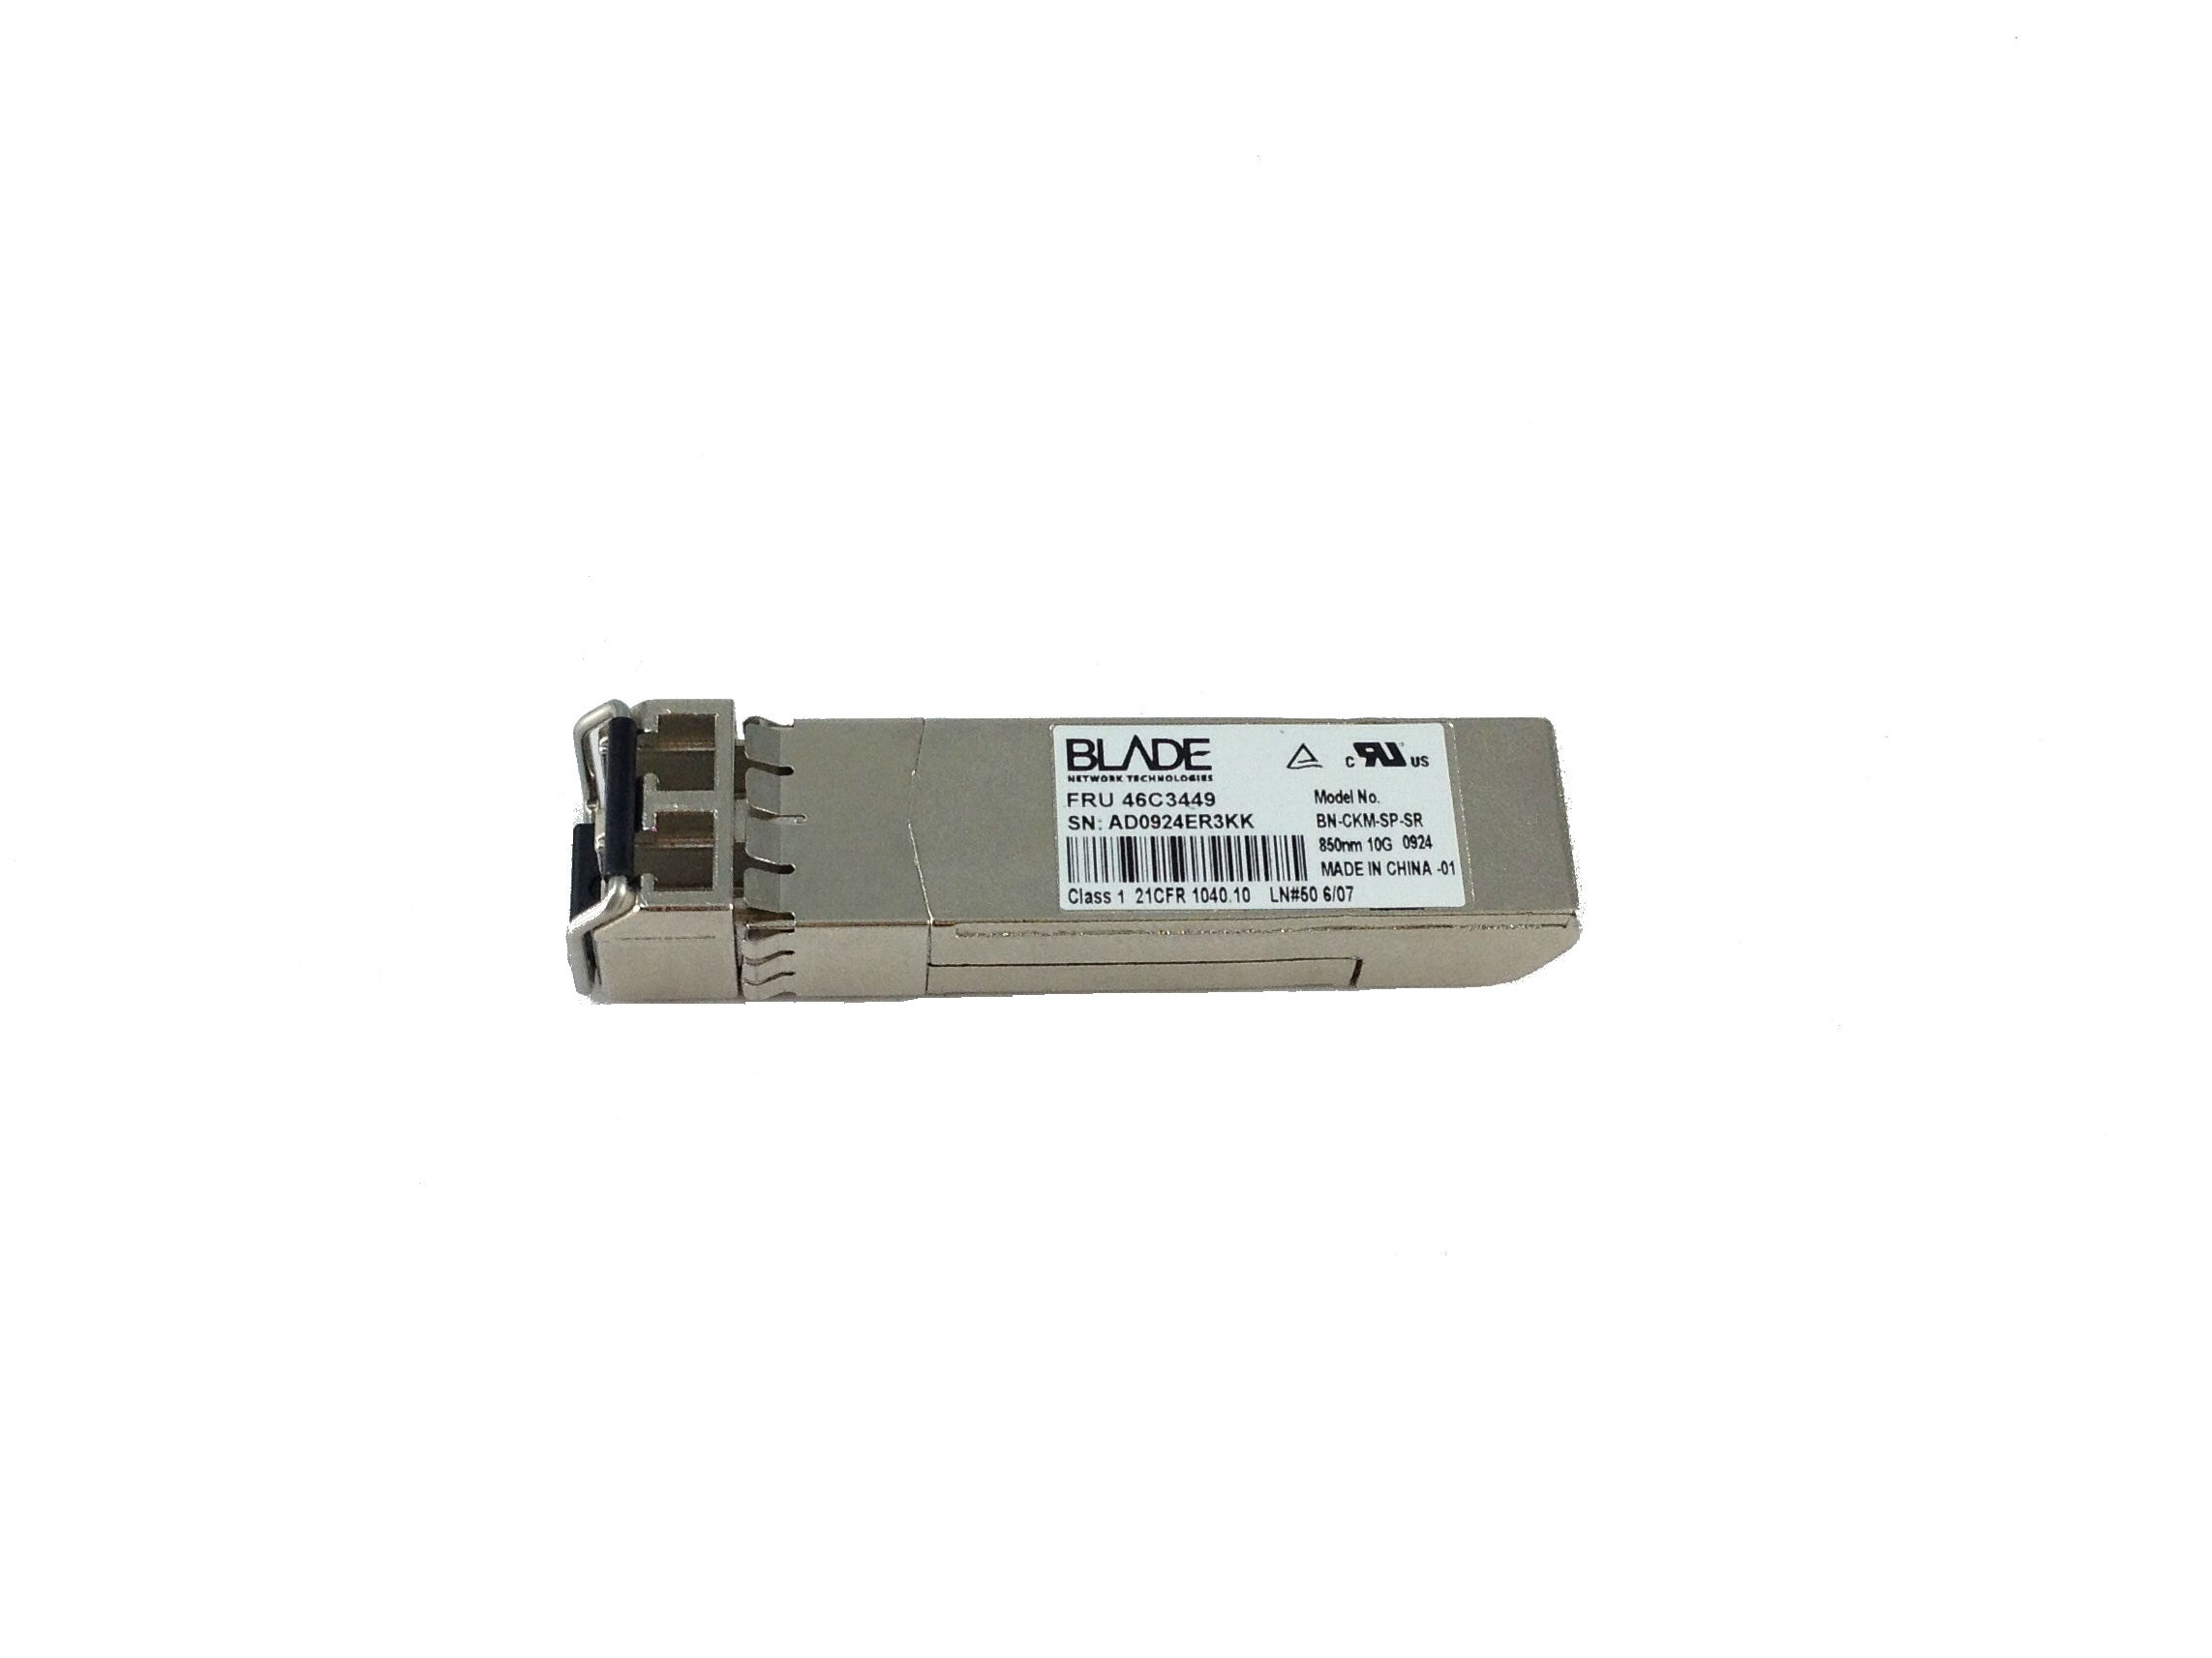 IBM Blade Bn-Ckm-Sp-Sr 80Nm 10GB SFP+ Transceiver (46C3449)